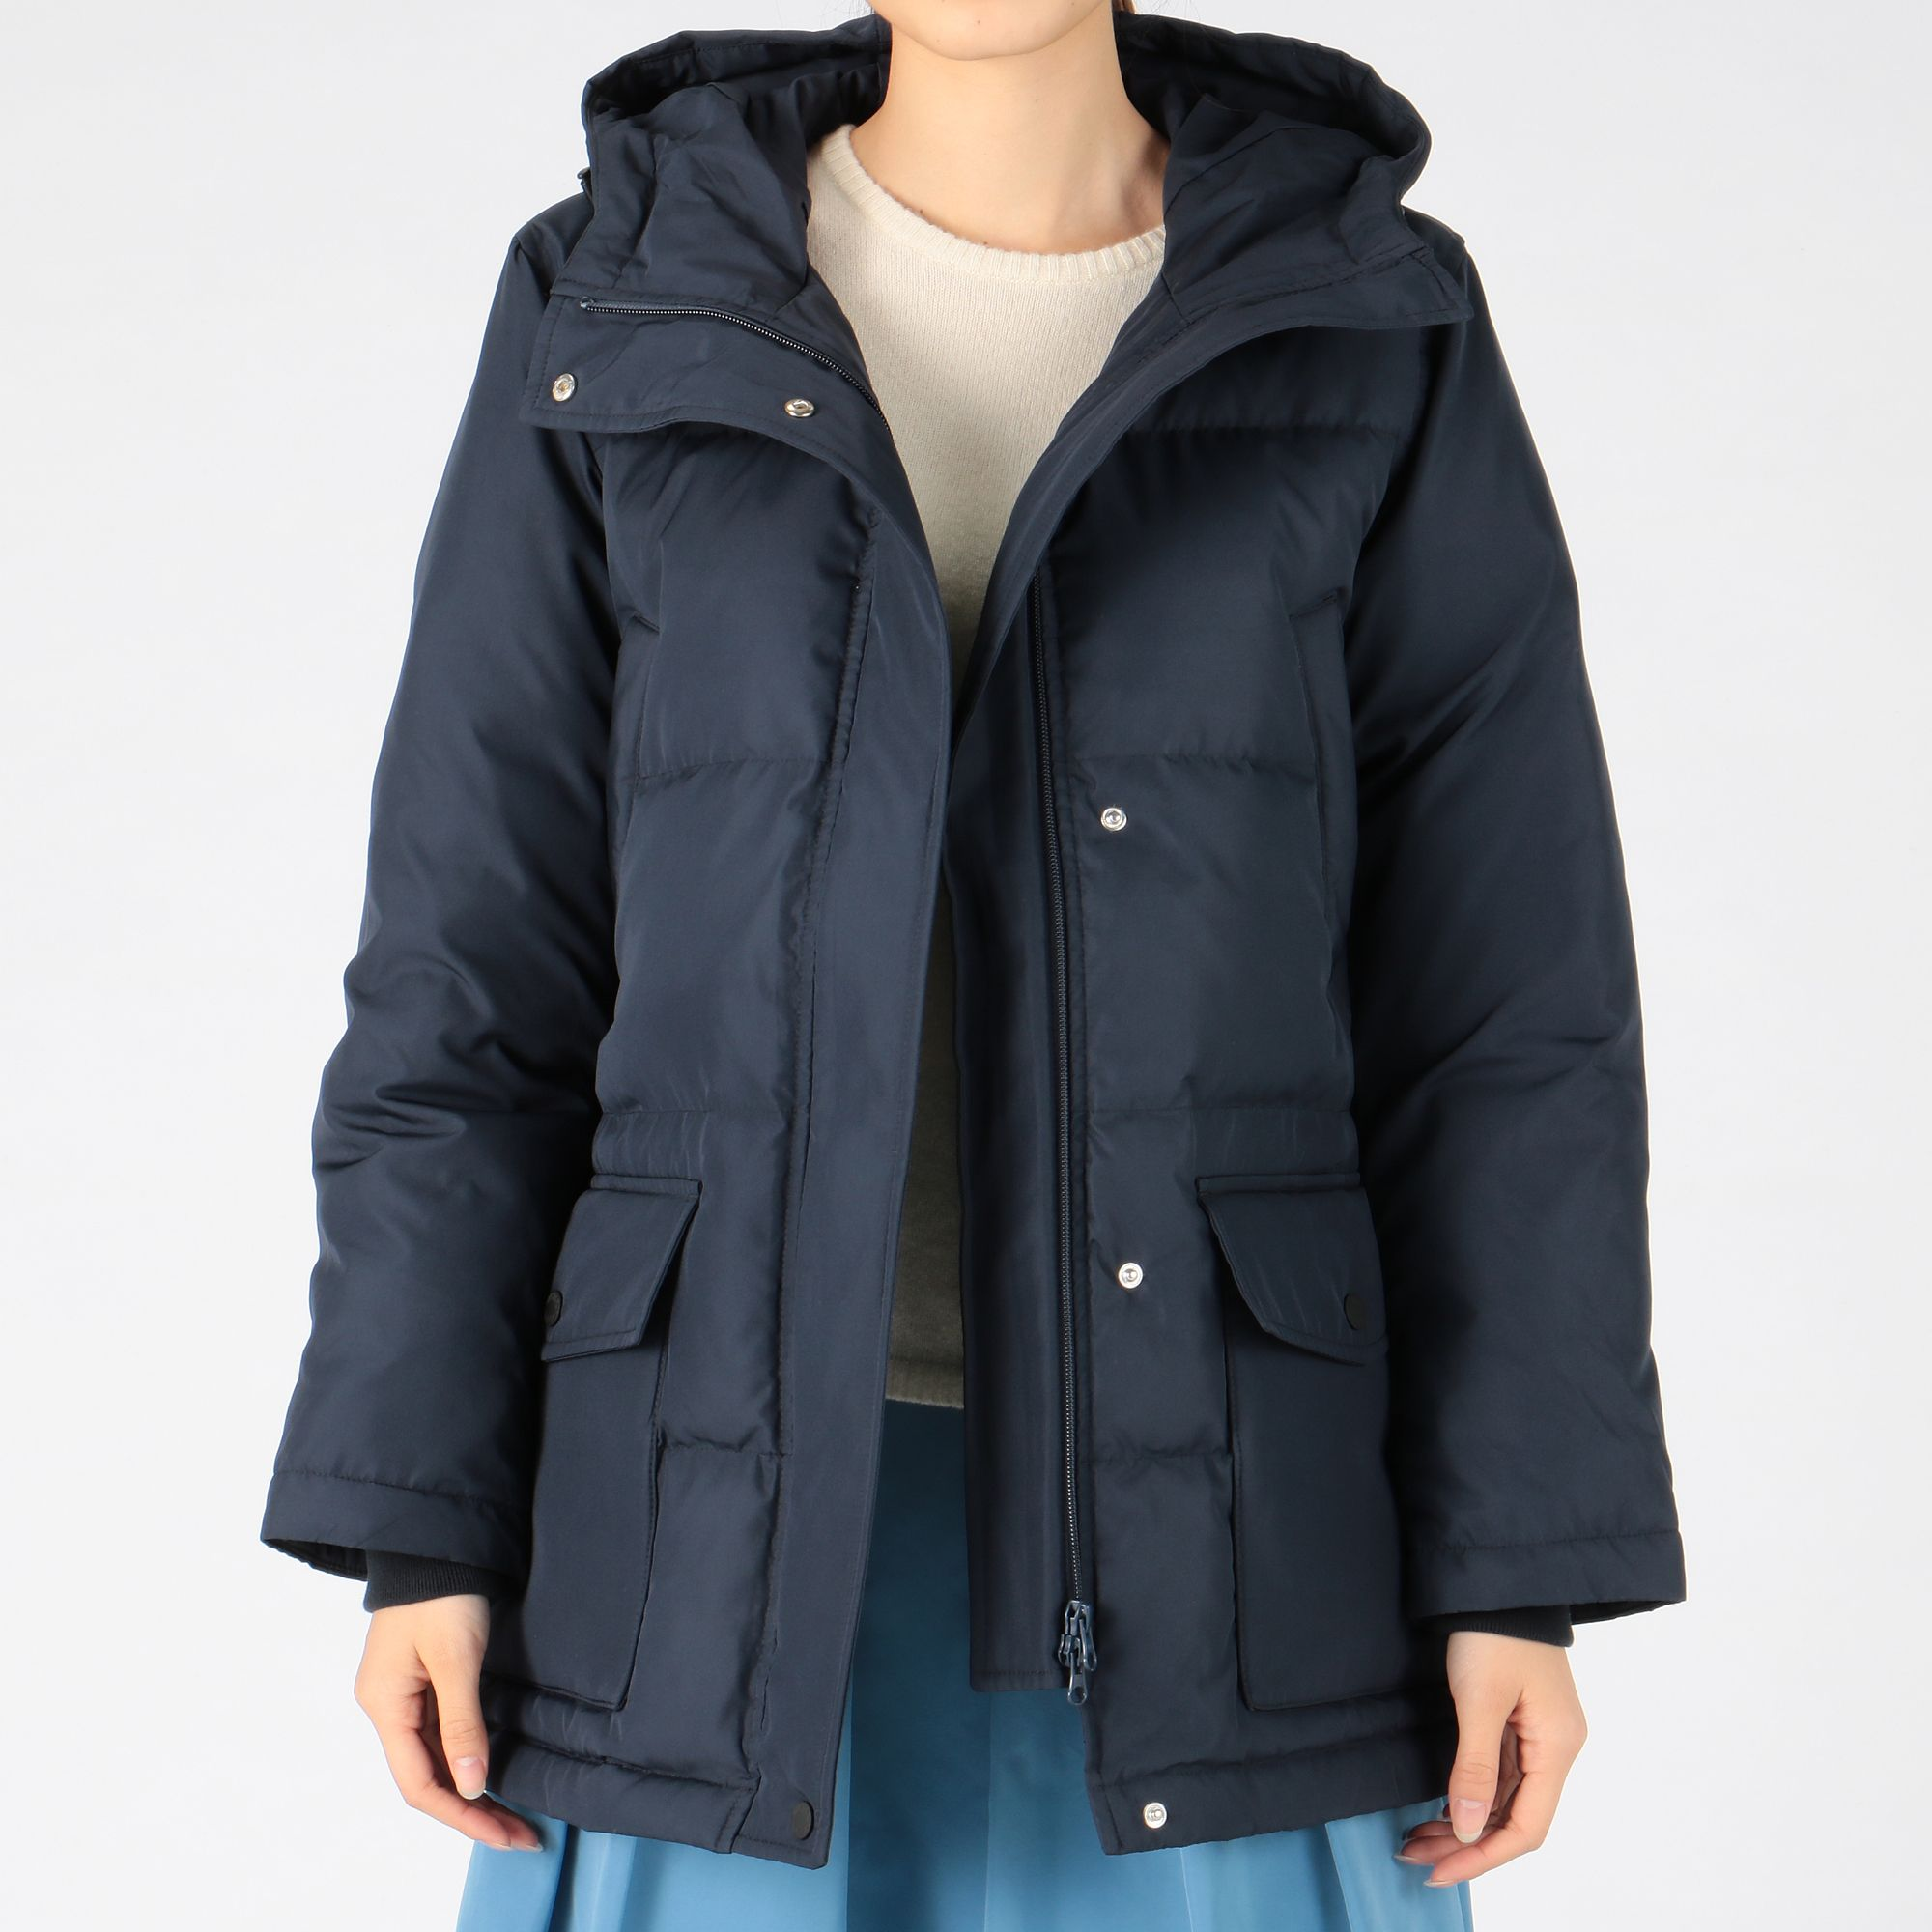 MELROSE CLAIRE(メルローズ クレール)/Dickies×CLAIREコラボダウンコート